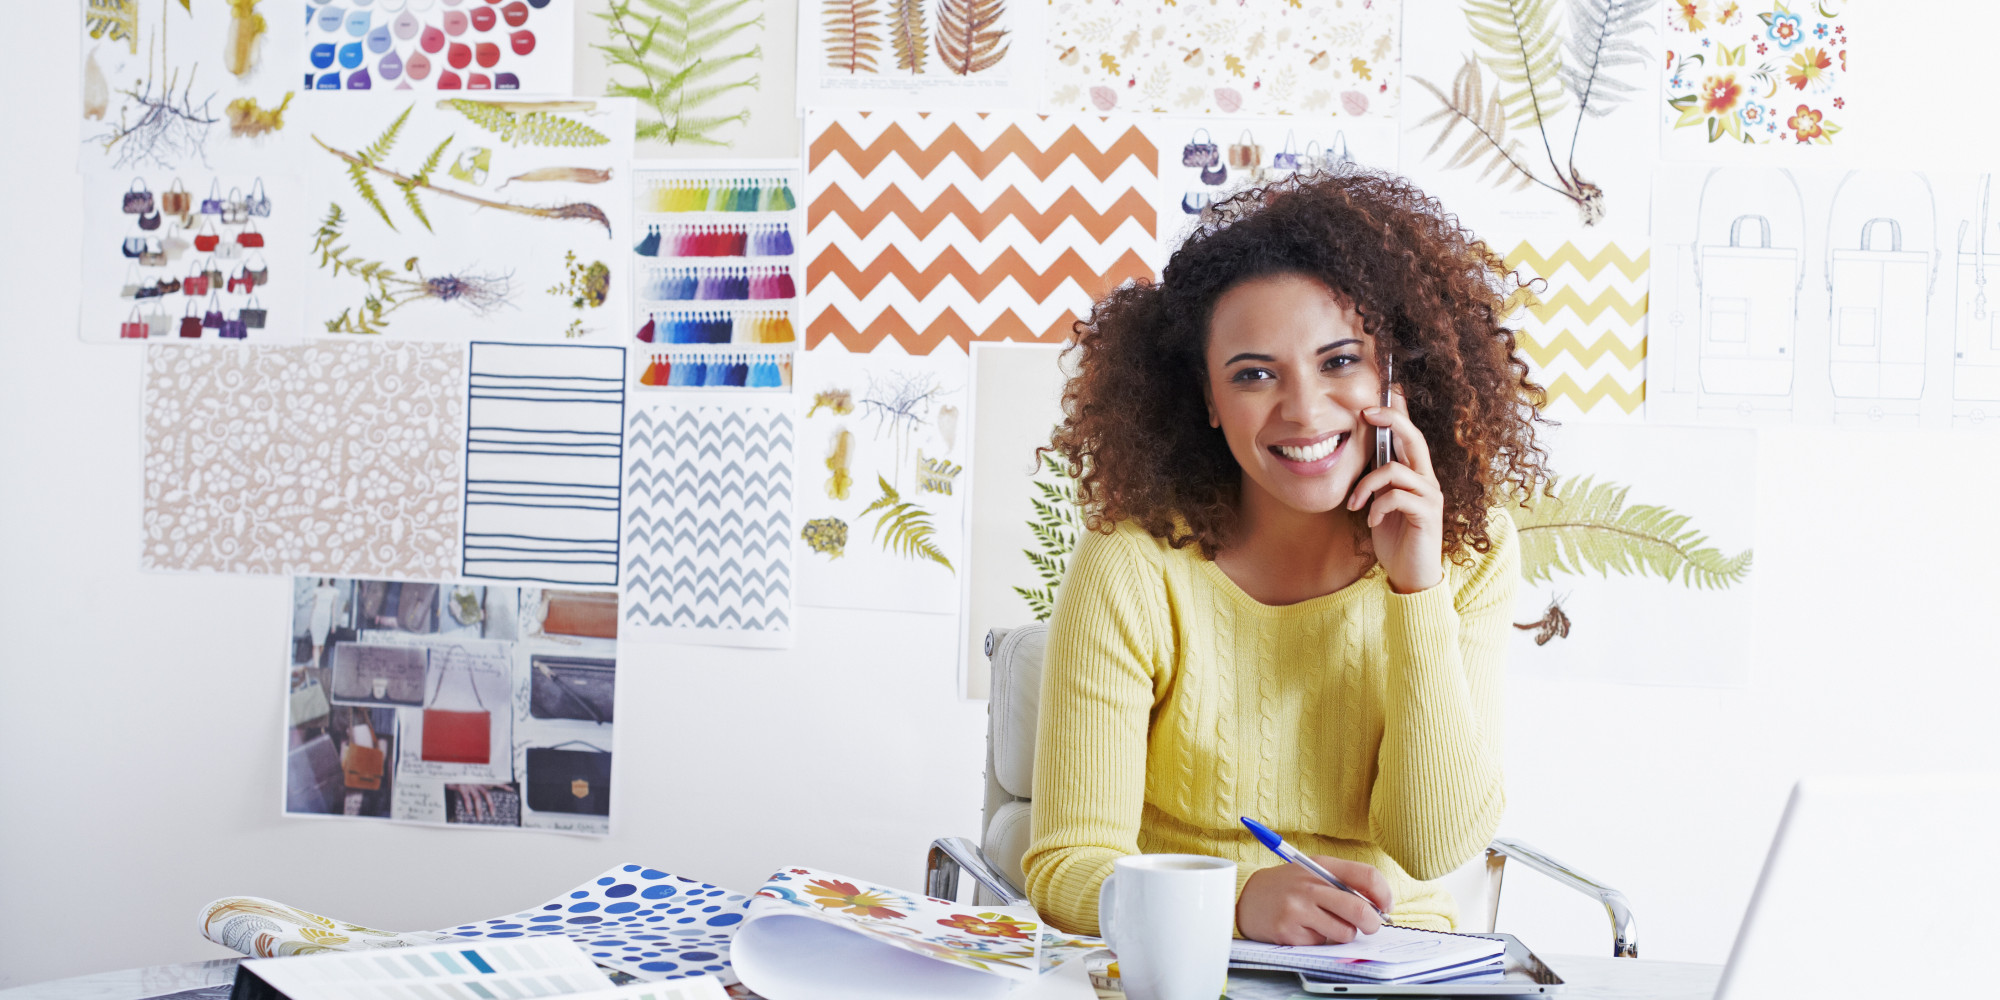 5 Tips For Working From Home | HuffPost